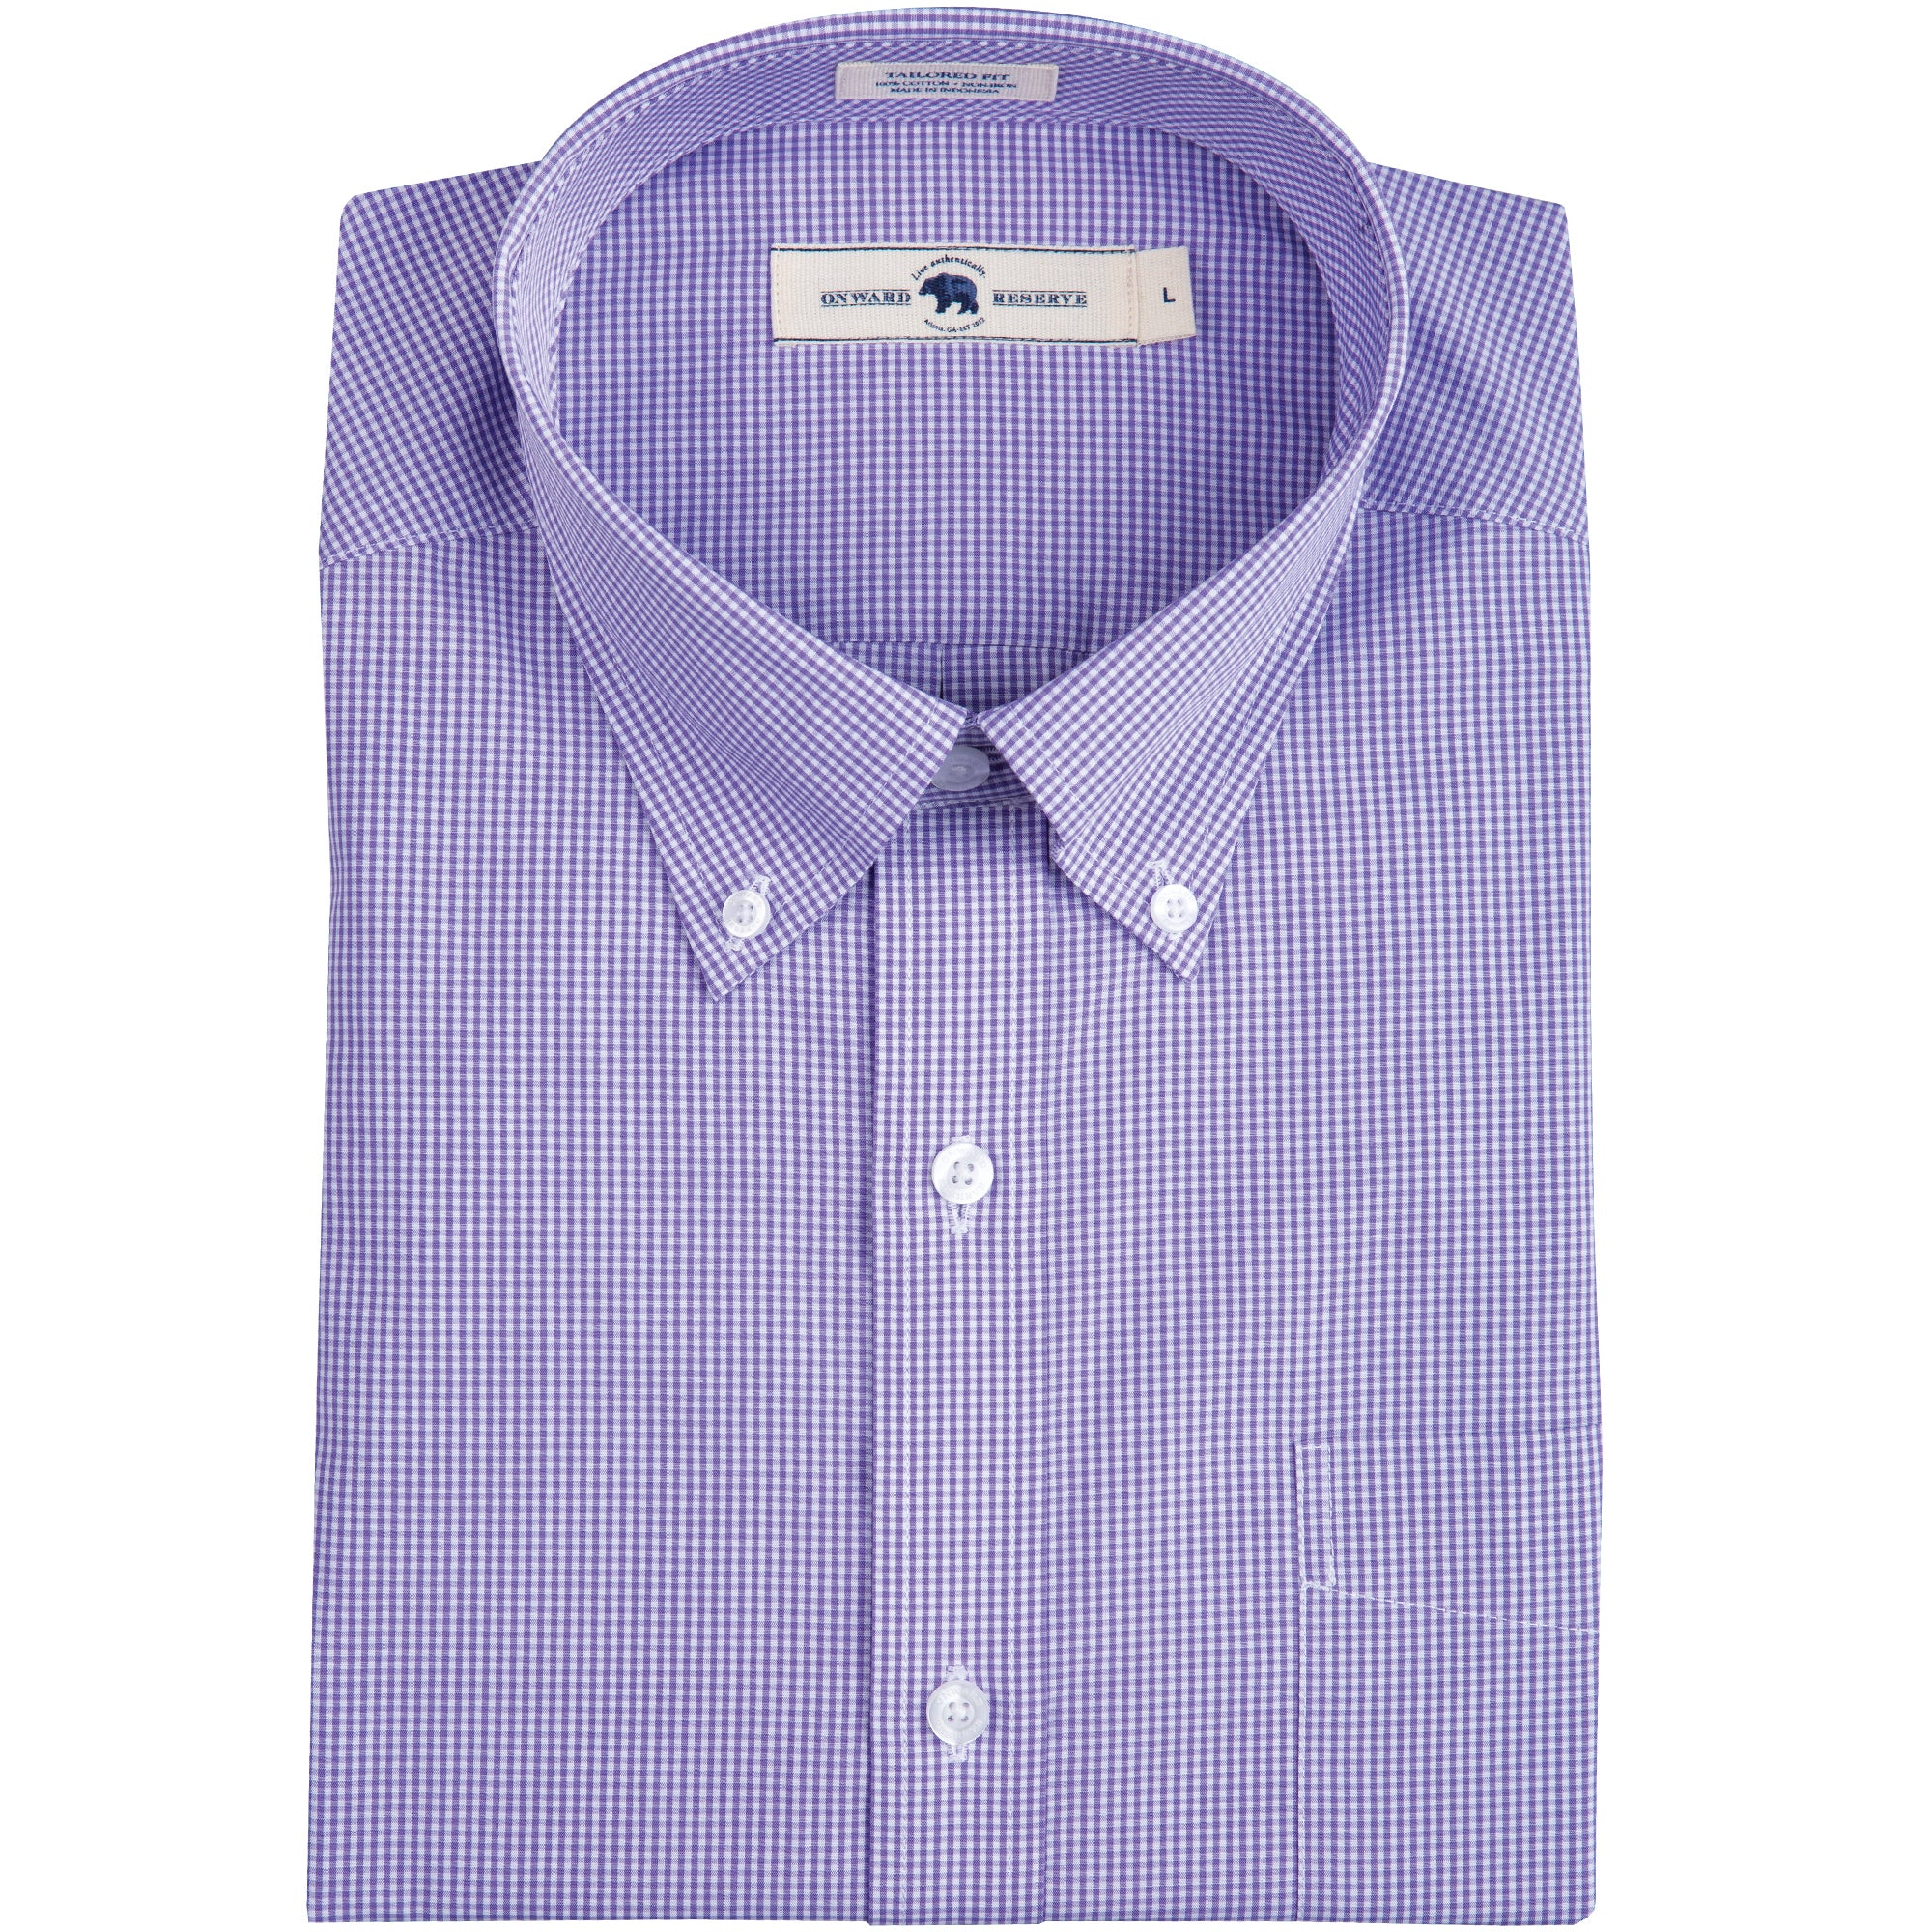 Jones Tailored Fit Button Down - OnwardReserve